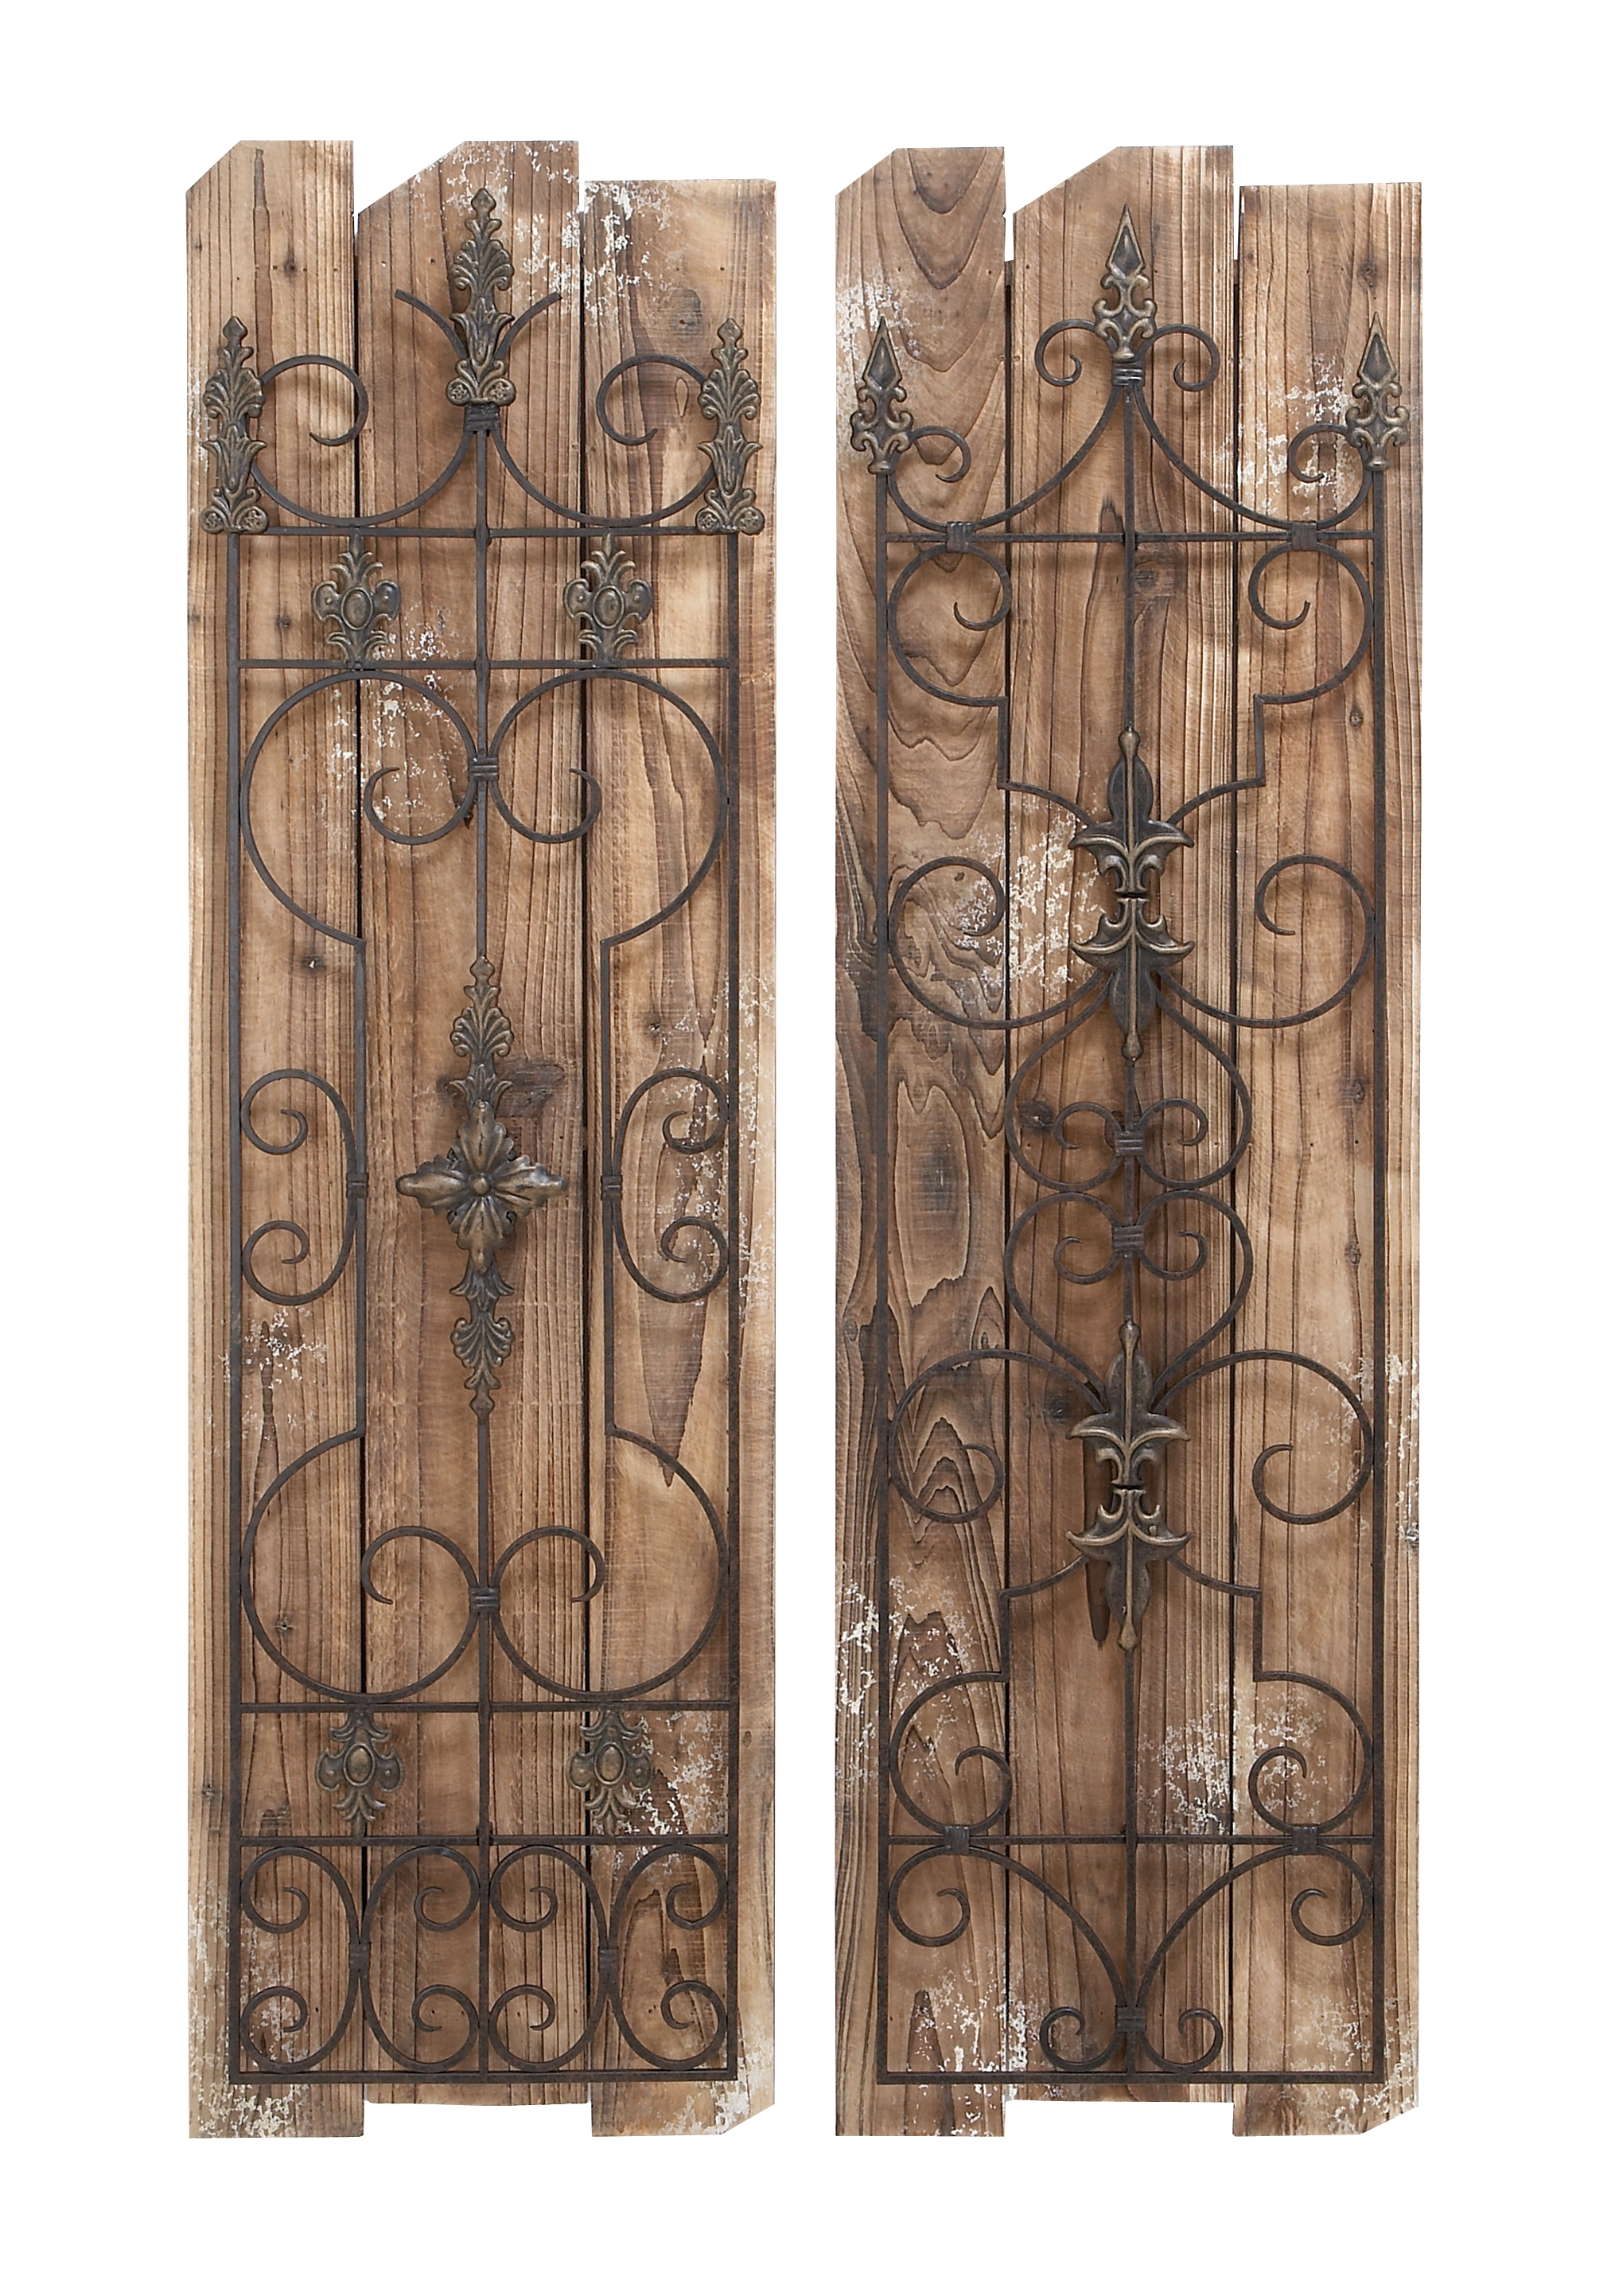 Enchanting Wooded Gate Wall Plaque by Benzara